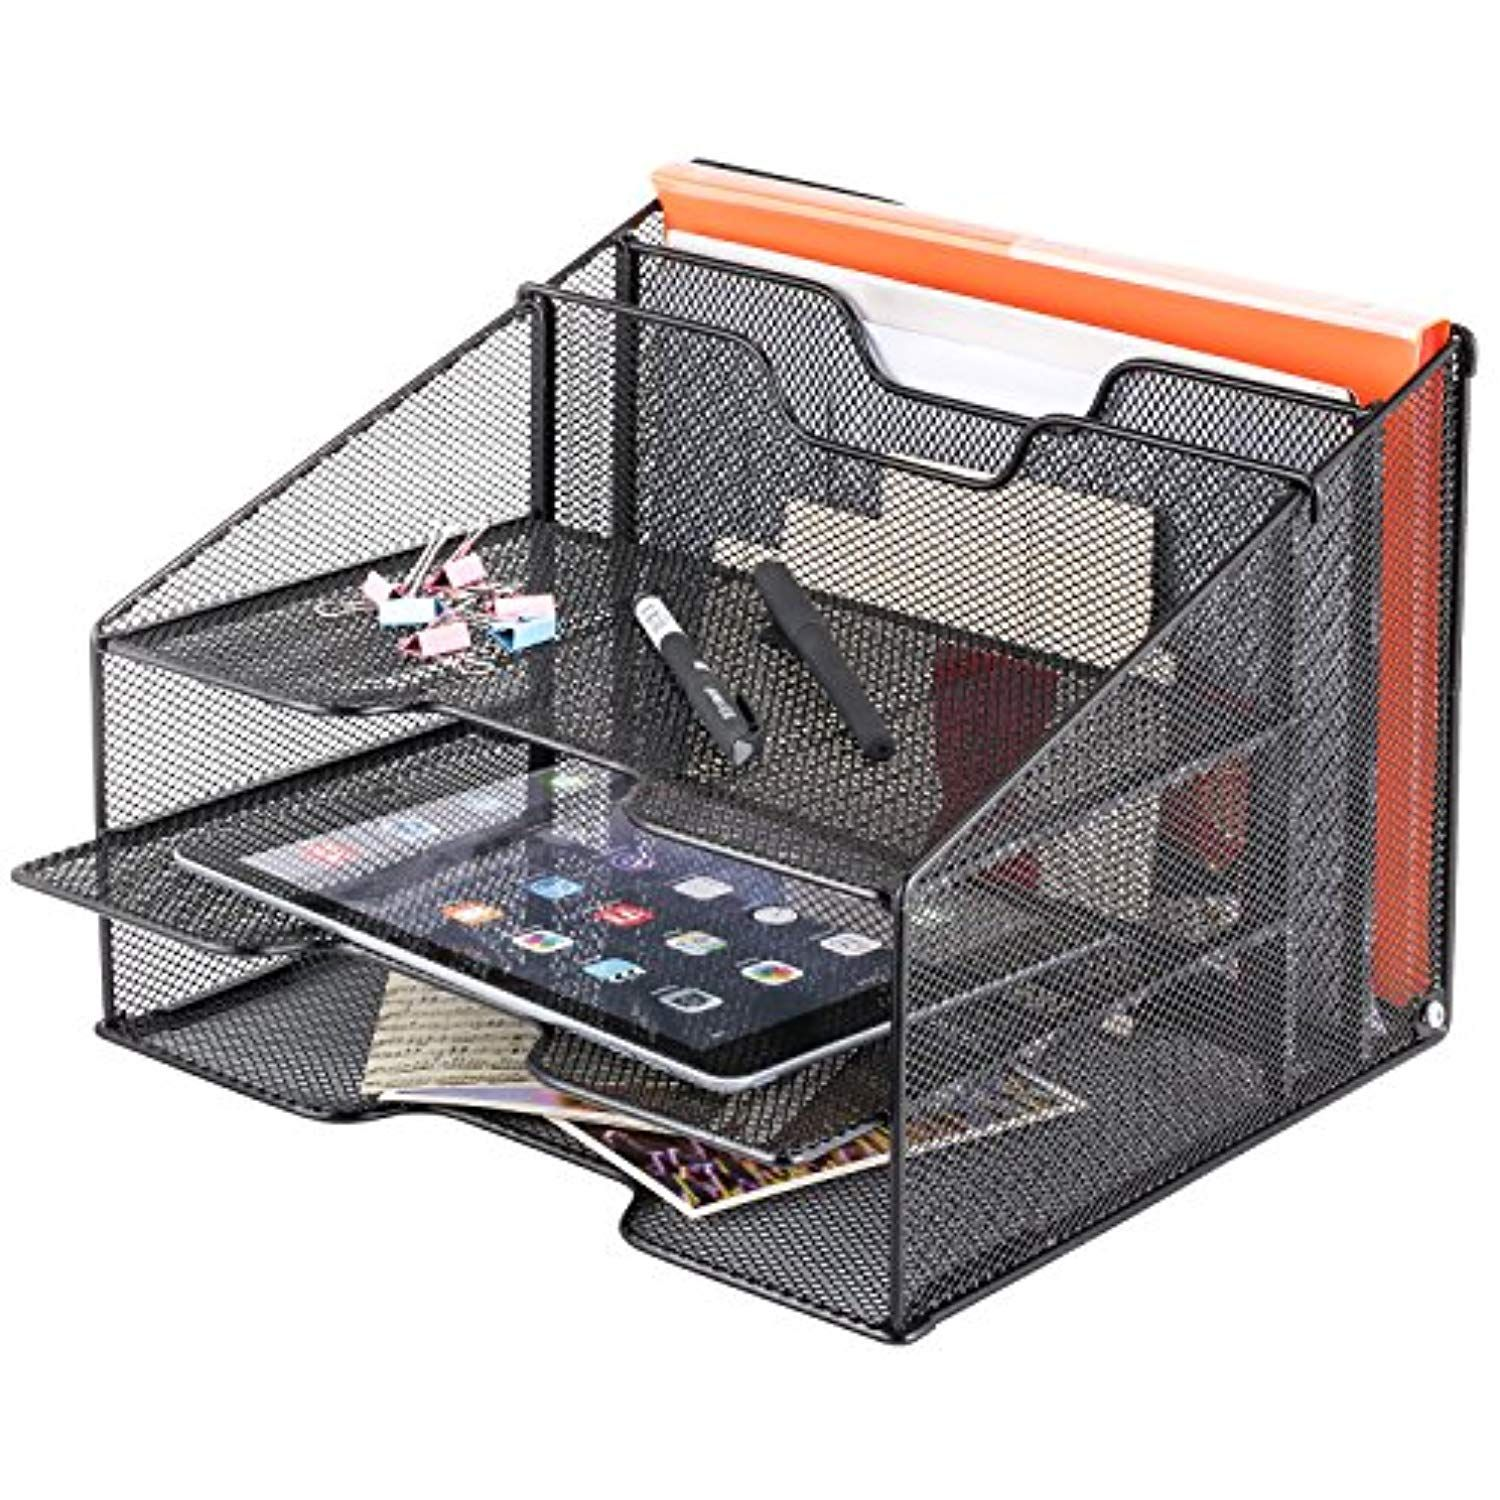 Samstar Mesh Desk File Organizer Letter Tray Holder, Desktop File